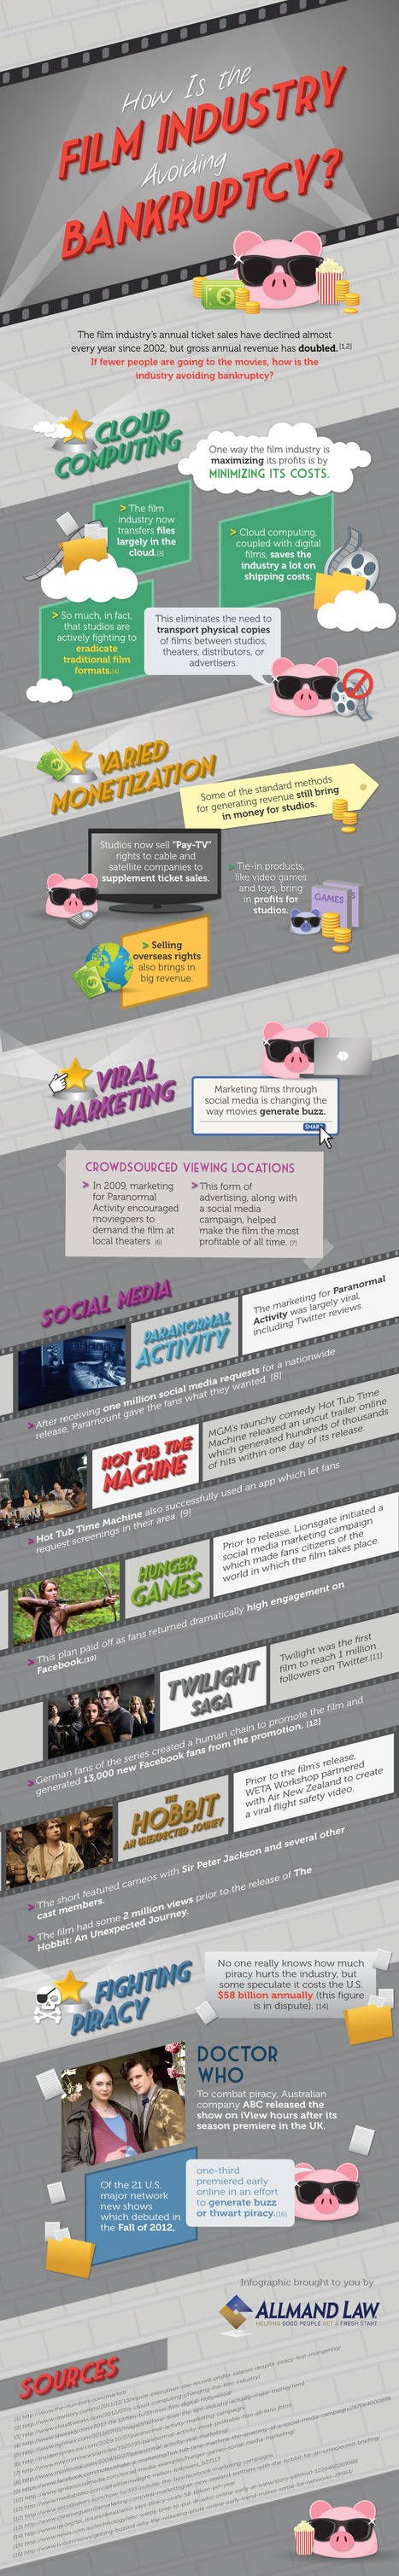 How Social Media and Viral Marketing are Saving the Film Industry [INFOGRAPHIC] | Stories - an experience for your audience - | Scoop.it